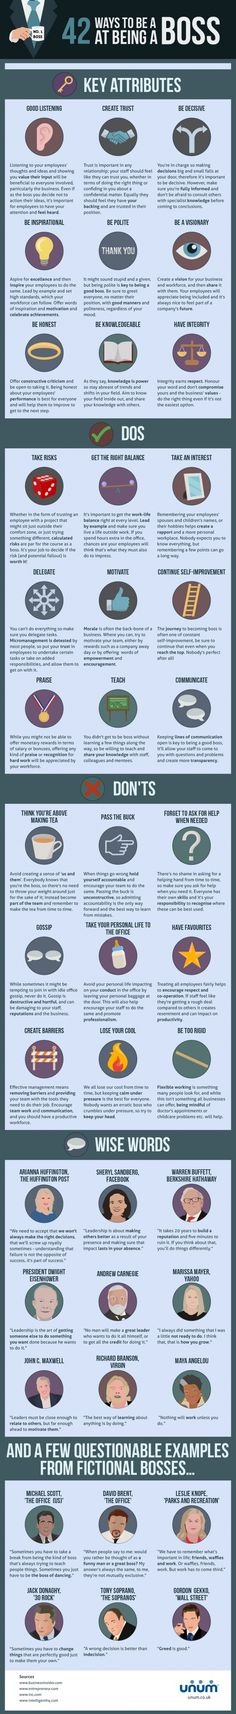 Amazing Ways to be a Boss at Being a Boss #Infographics